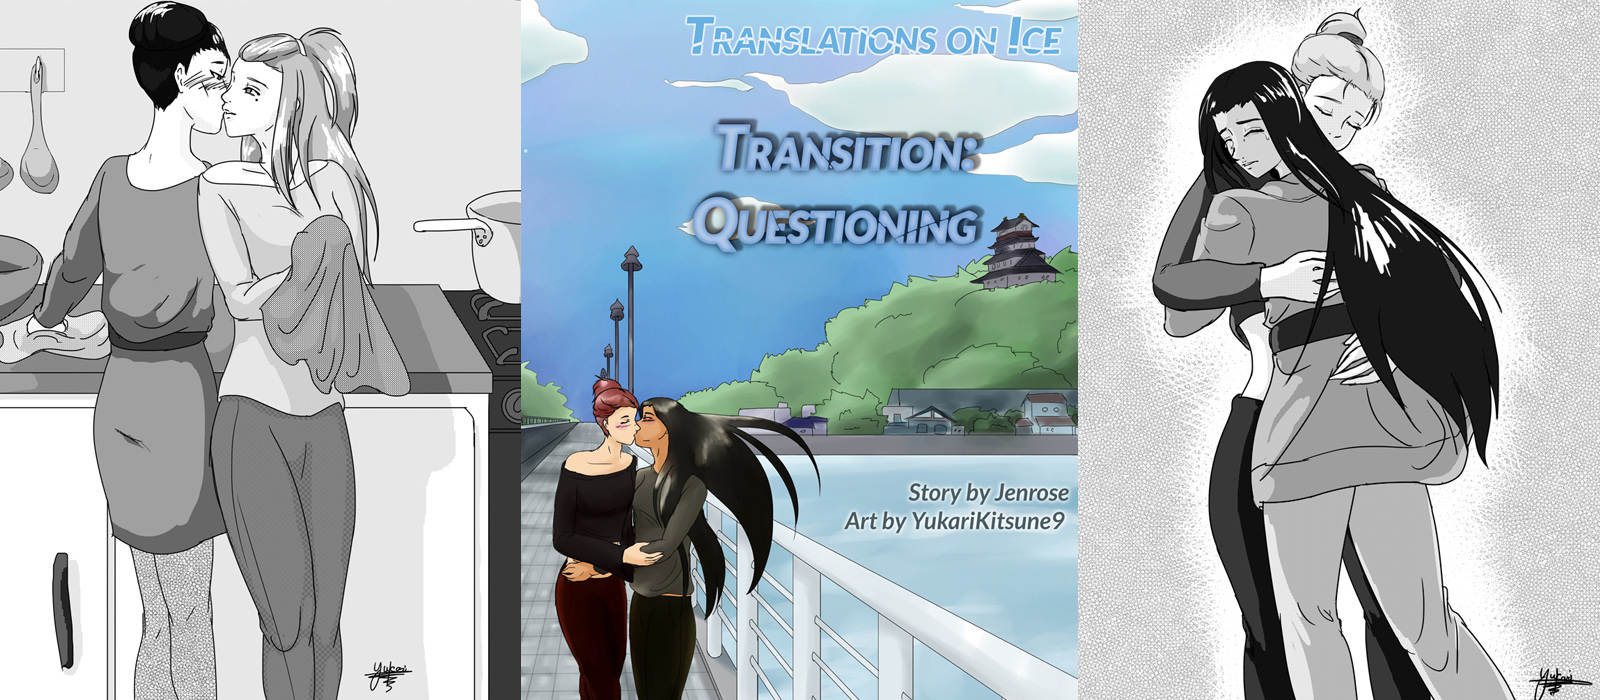 Three drawings are side by side. In the first one, Lilia Baranovskaya and Okukawa Minako are kissing in the kitchen while Lilia washes dishes. The middle image is cover art for Transitions: Questioning, and in it Mila and Sara are kissing out on the bridge in Hasetsu. The picture is rendered in soft blues and greens, the young women are dressed in black and the ocean is next to them, with puffy clouds in a blue sky providing the bulk of the backdrop. The hill to Hasetsu castle is visible. On the far right, we see a black and white sketch of Sara hugging Mila, luggage on the ground next to them, with everyone looking overwhelmed.